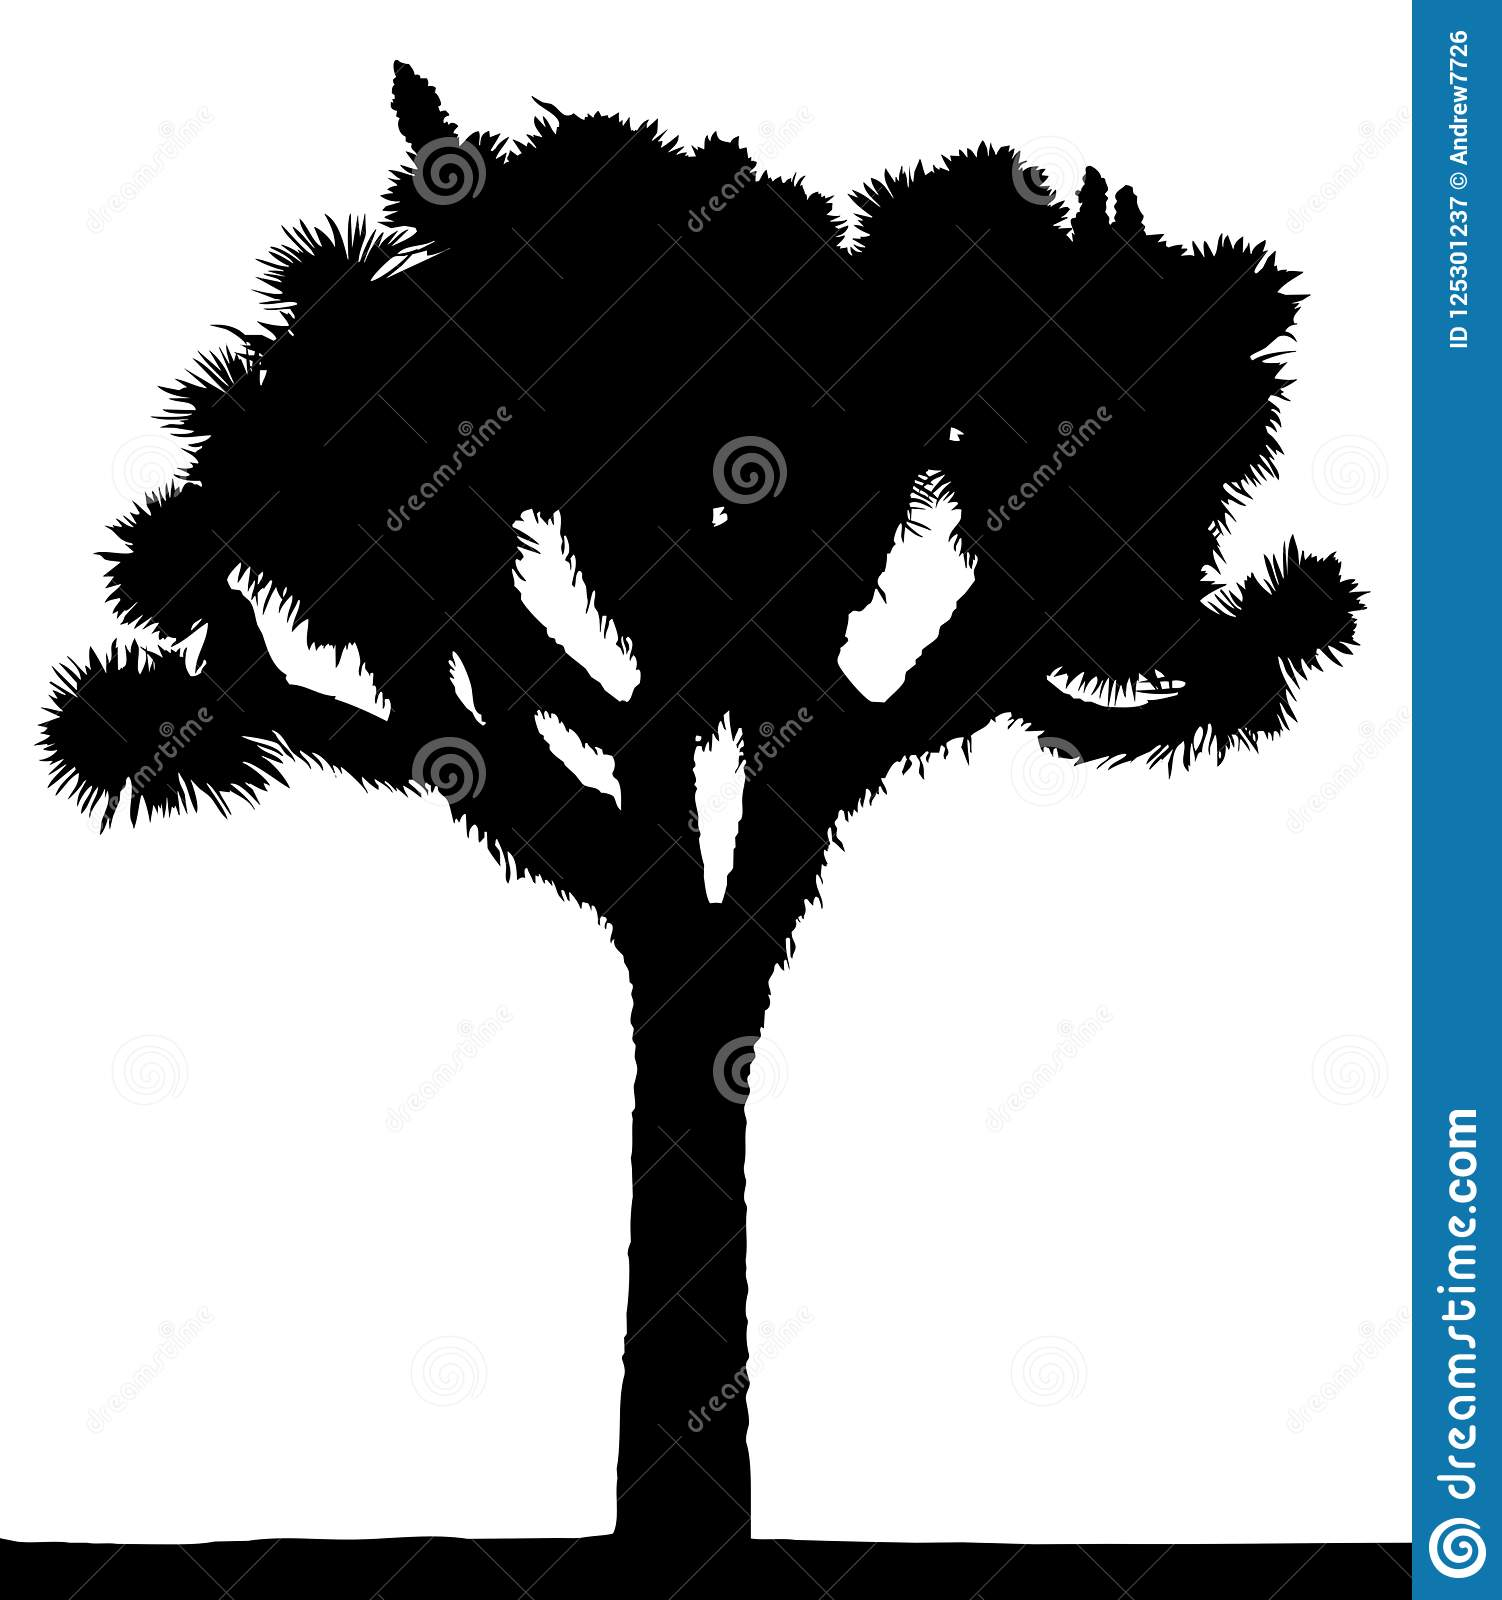 Cartoon Joshua Tree Stock Illustrations 87 Cartoon Joshua Tree Stock Illustrations Vectors Clipart Dreamstime The trunk on the joshua tree is. https www dreamstime com vector silhouette joshua tree isolated white background image125301237